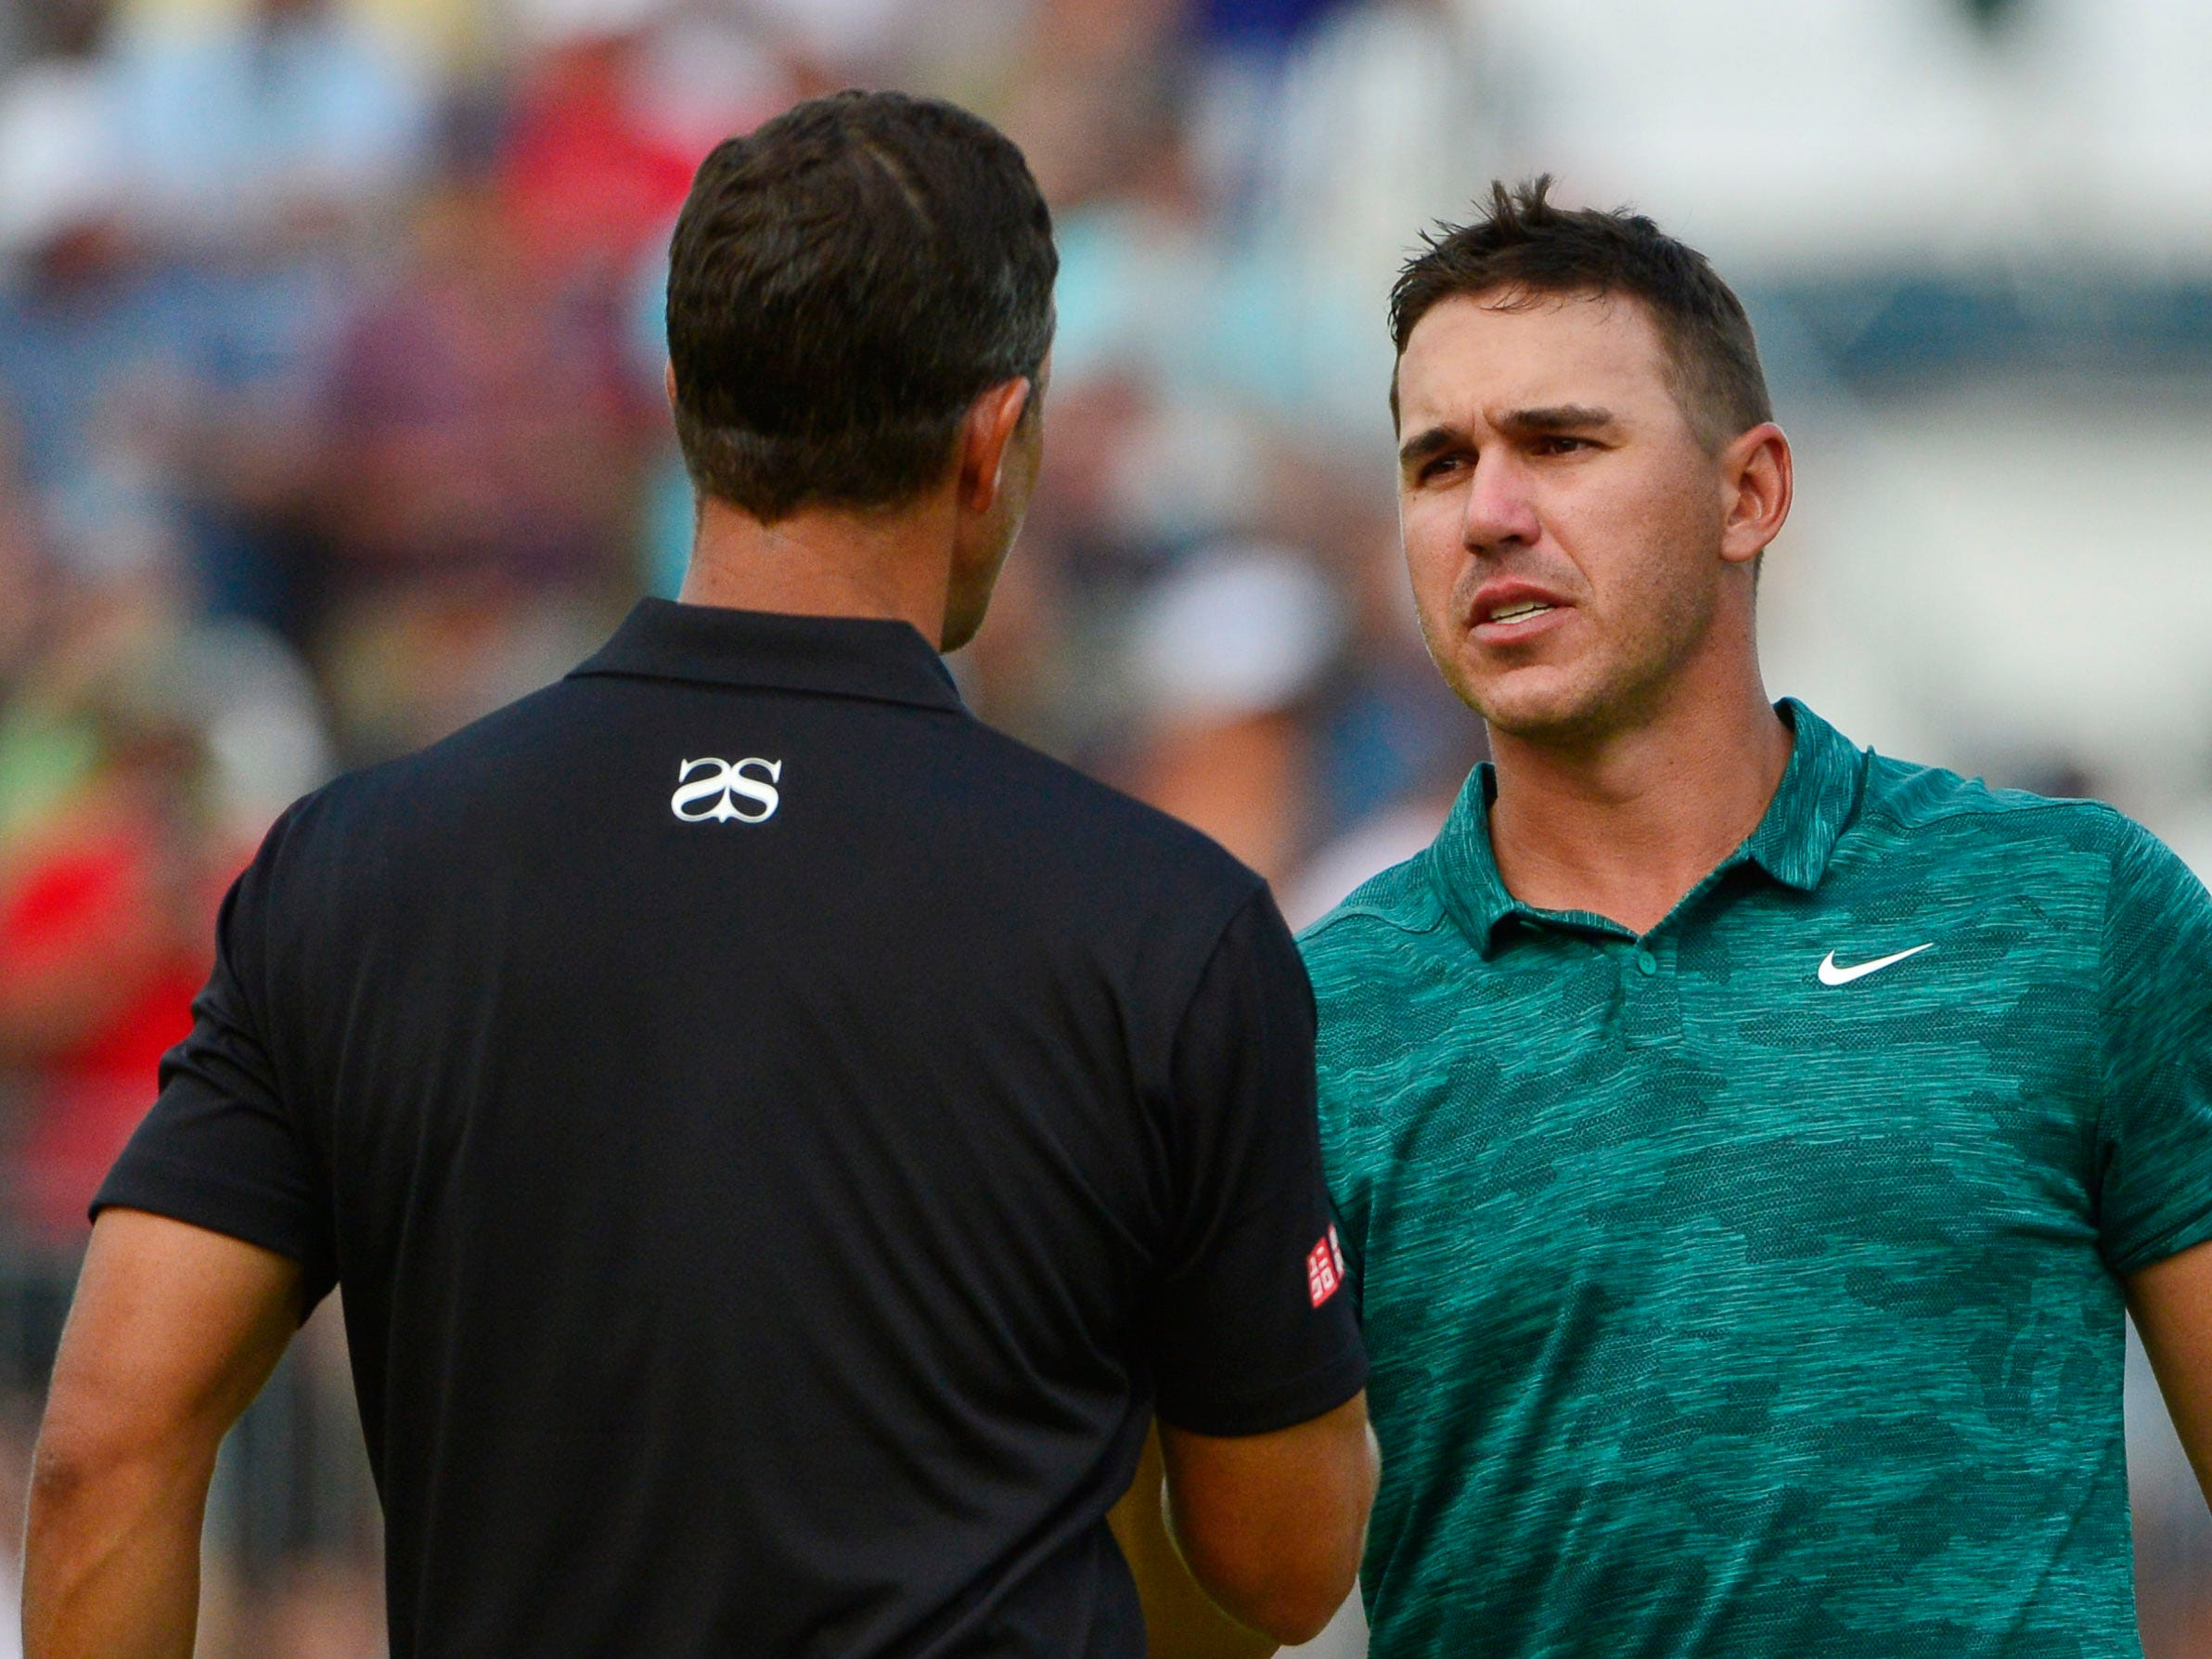 Brooks Koepka (right) shakes hands with Adam Scott on the 18th green.